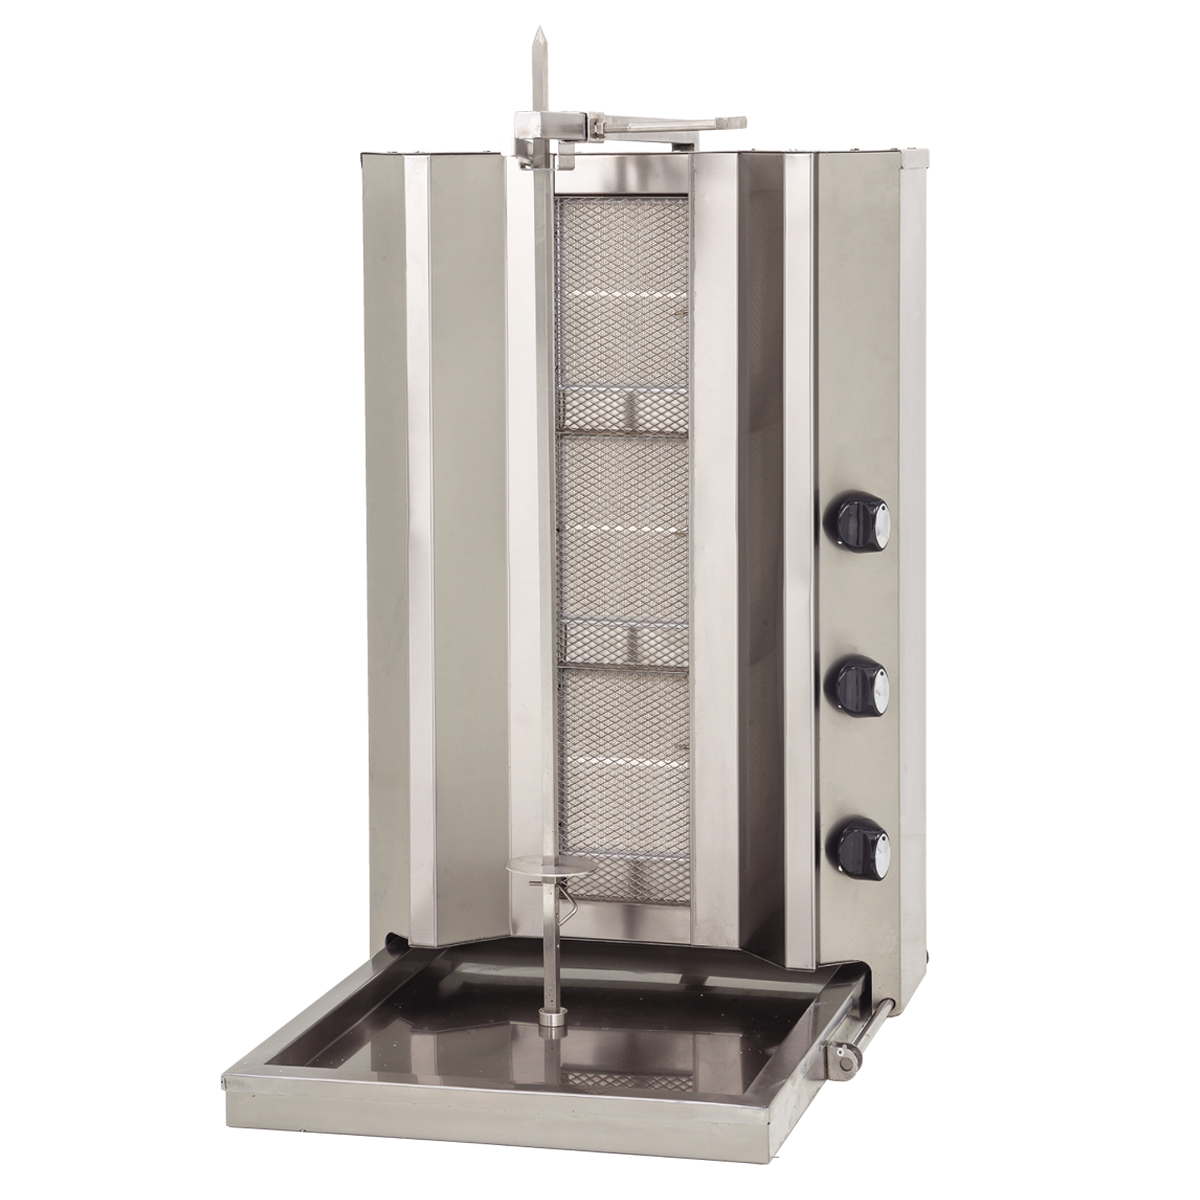 Doner Machine - Non Motor 3 Vertical Burner - Gas